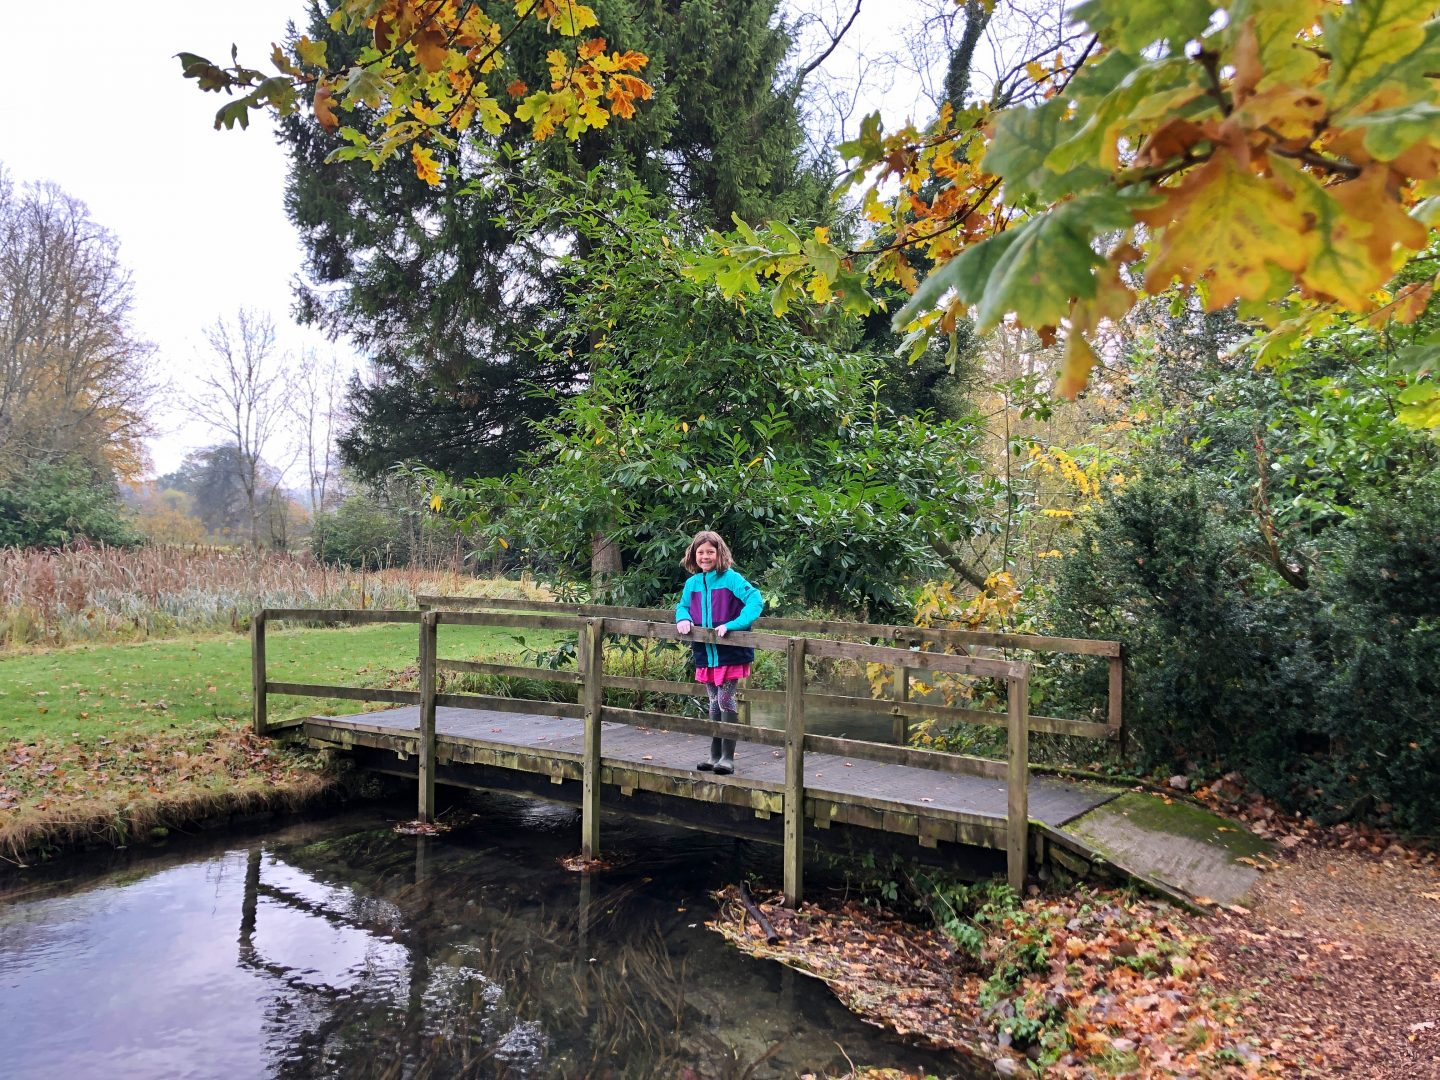 My daughter stands on a bridge across the river at the Lords of the Manor hotel. Autumnal leaves are everywhere and she wears wellies and a winter coat.